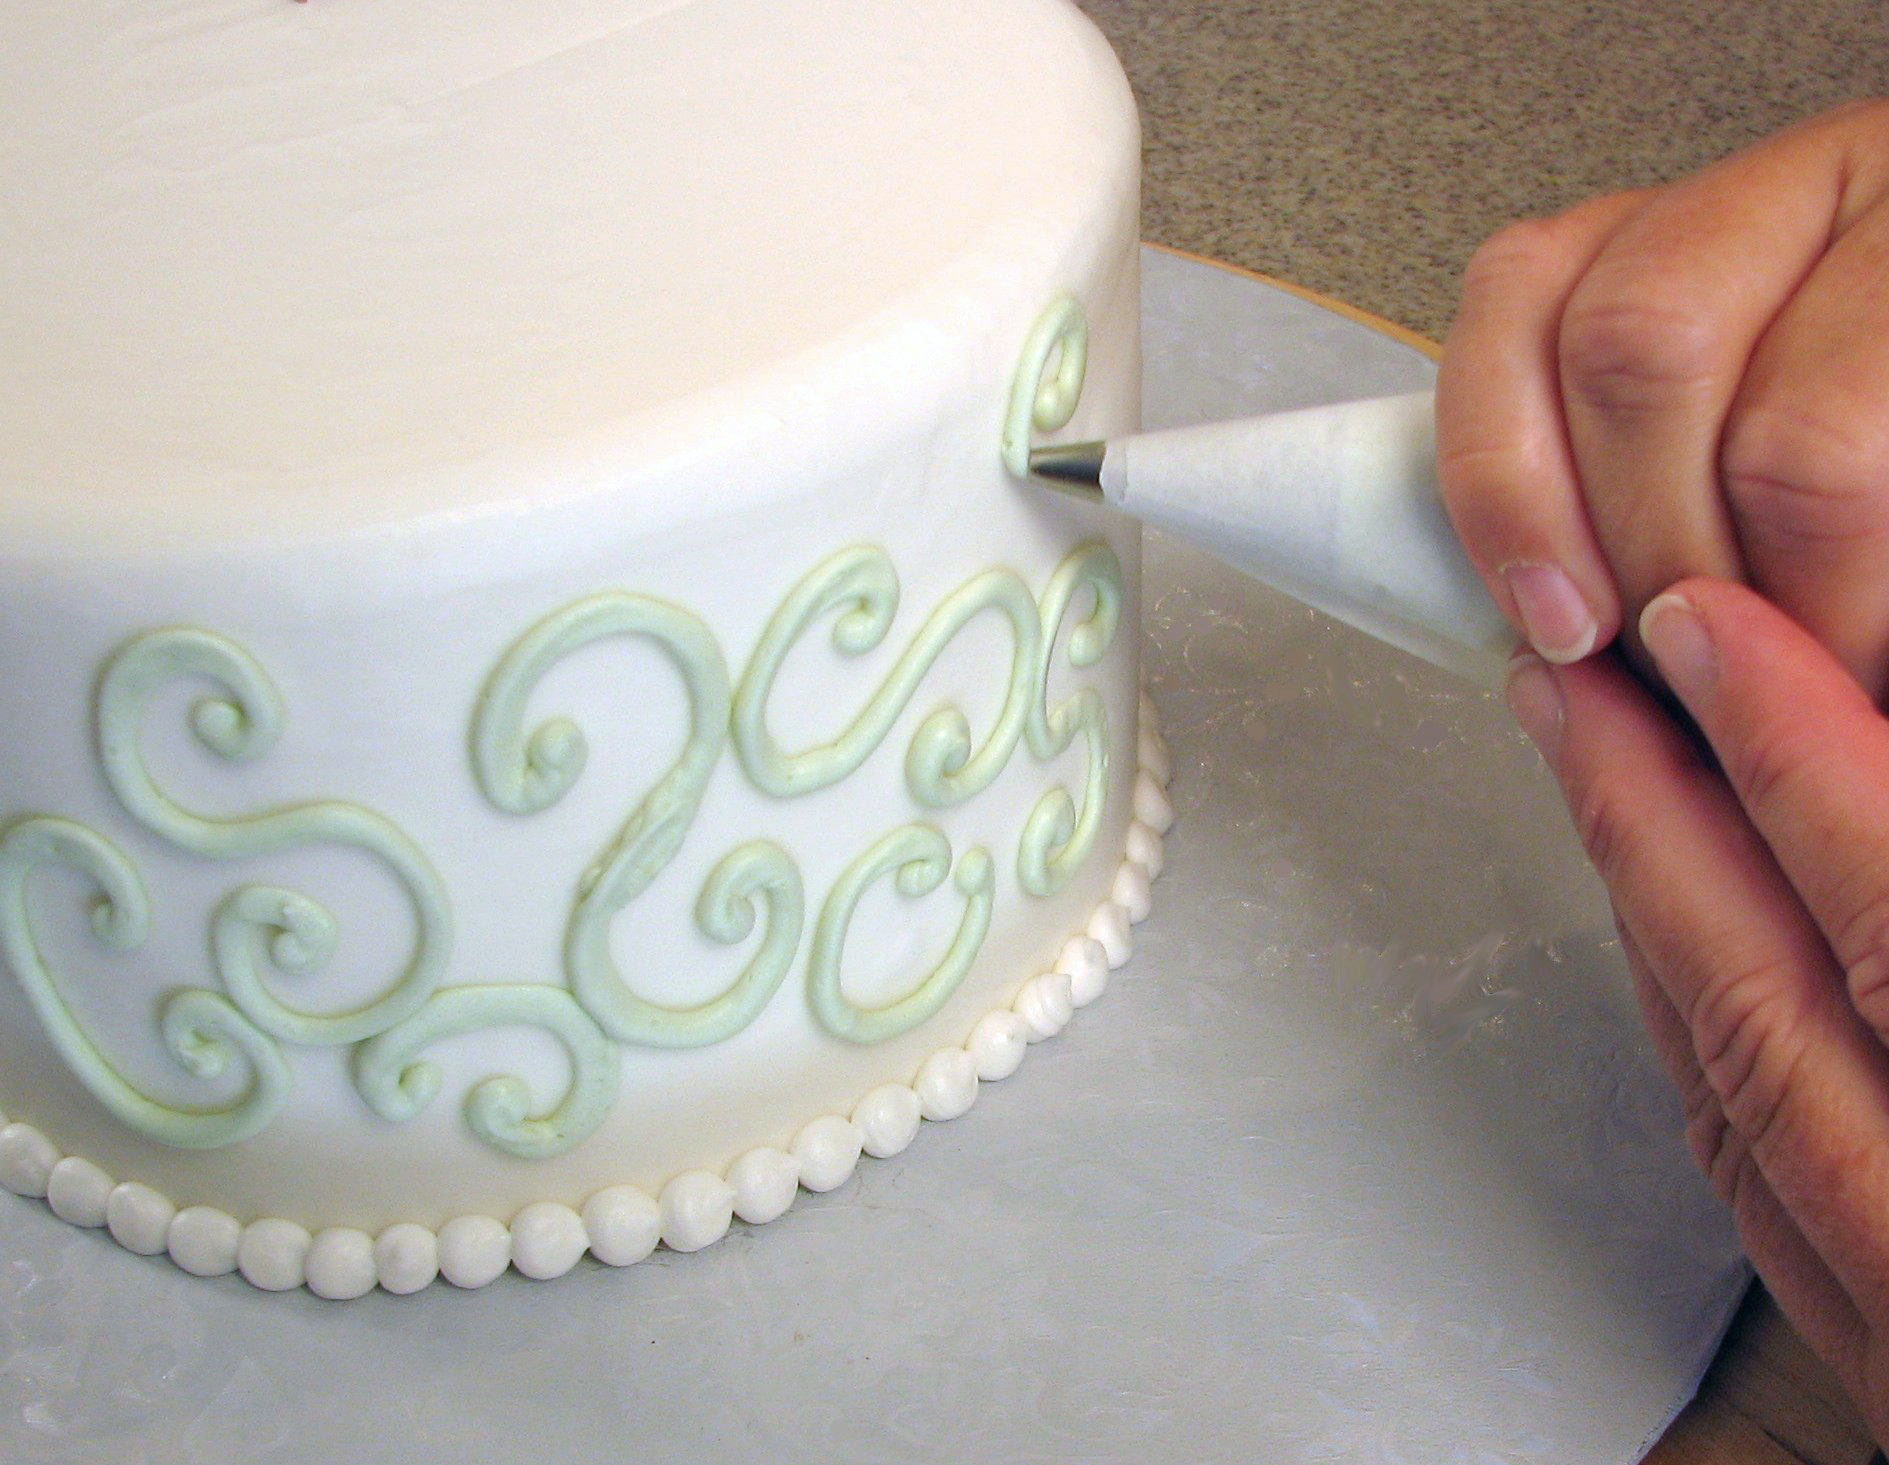 Cake Decoration With Icing : Cake decorating - Wikipedia